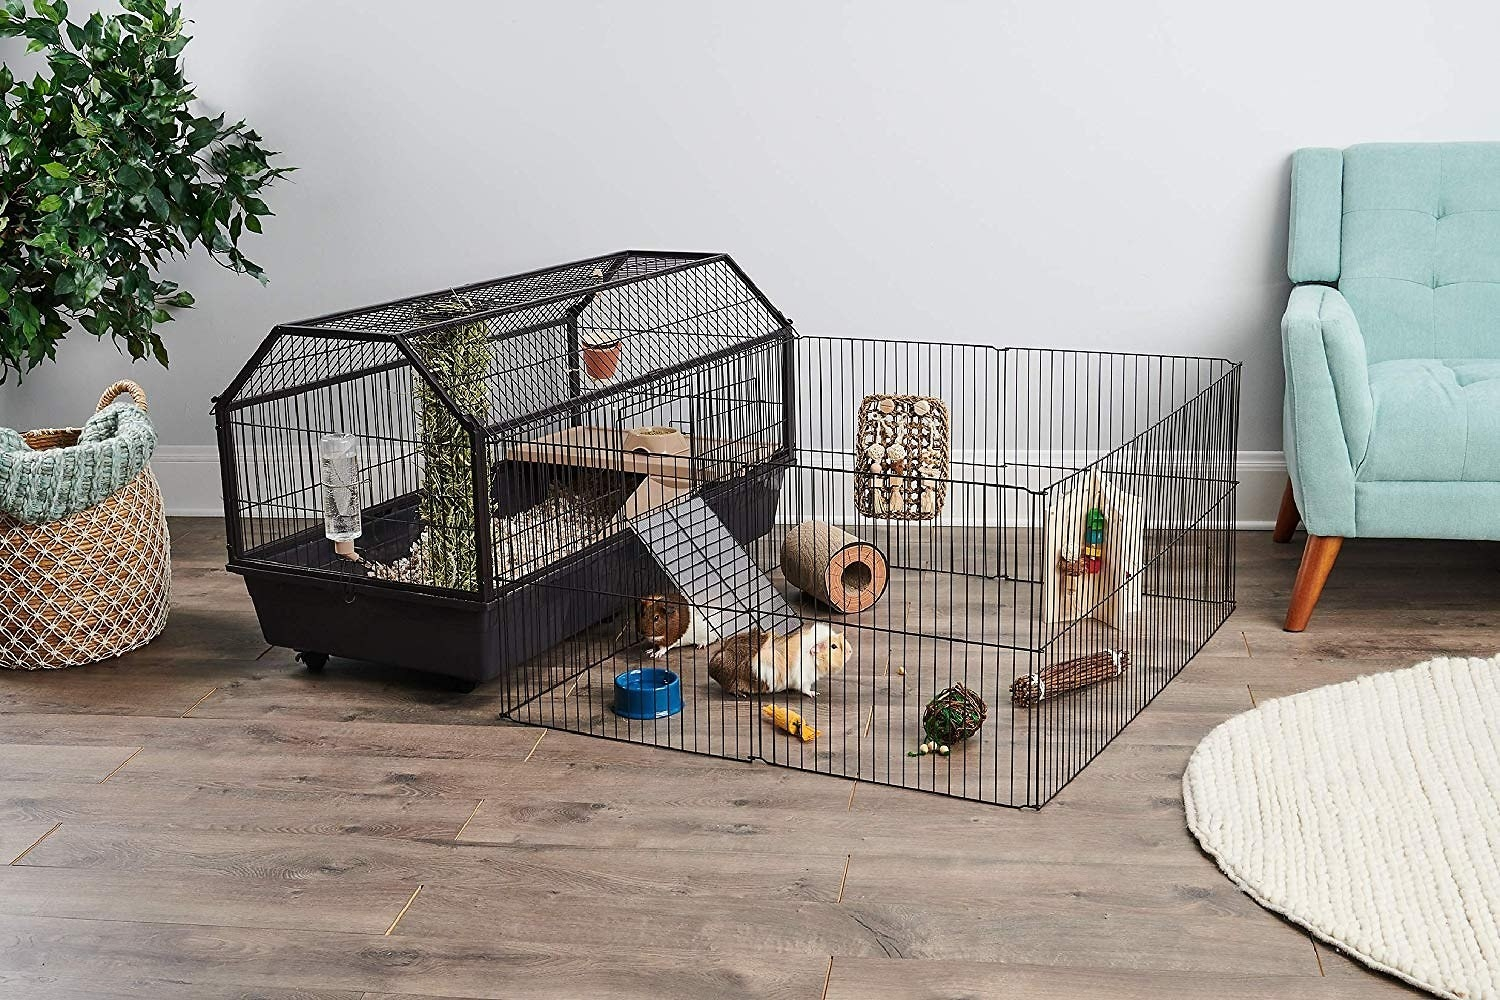 A large black gerbil cage with two levels and a ramp that runs down into an open caged area